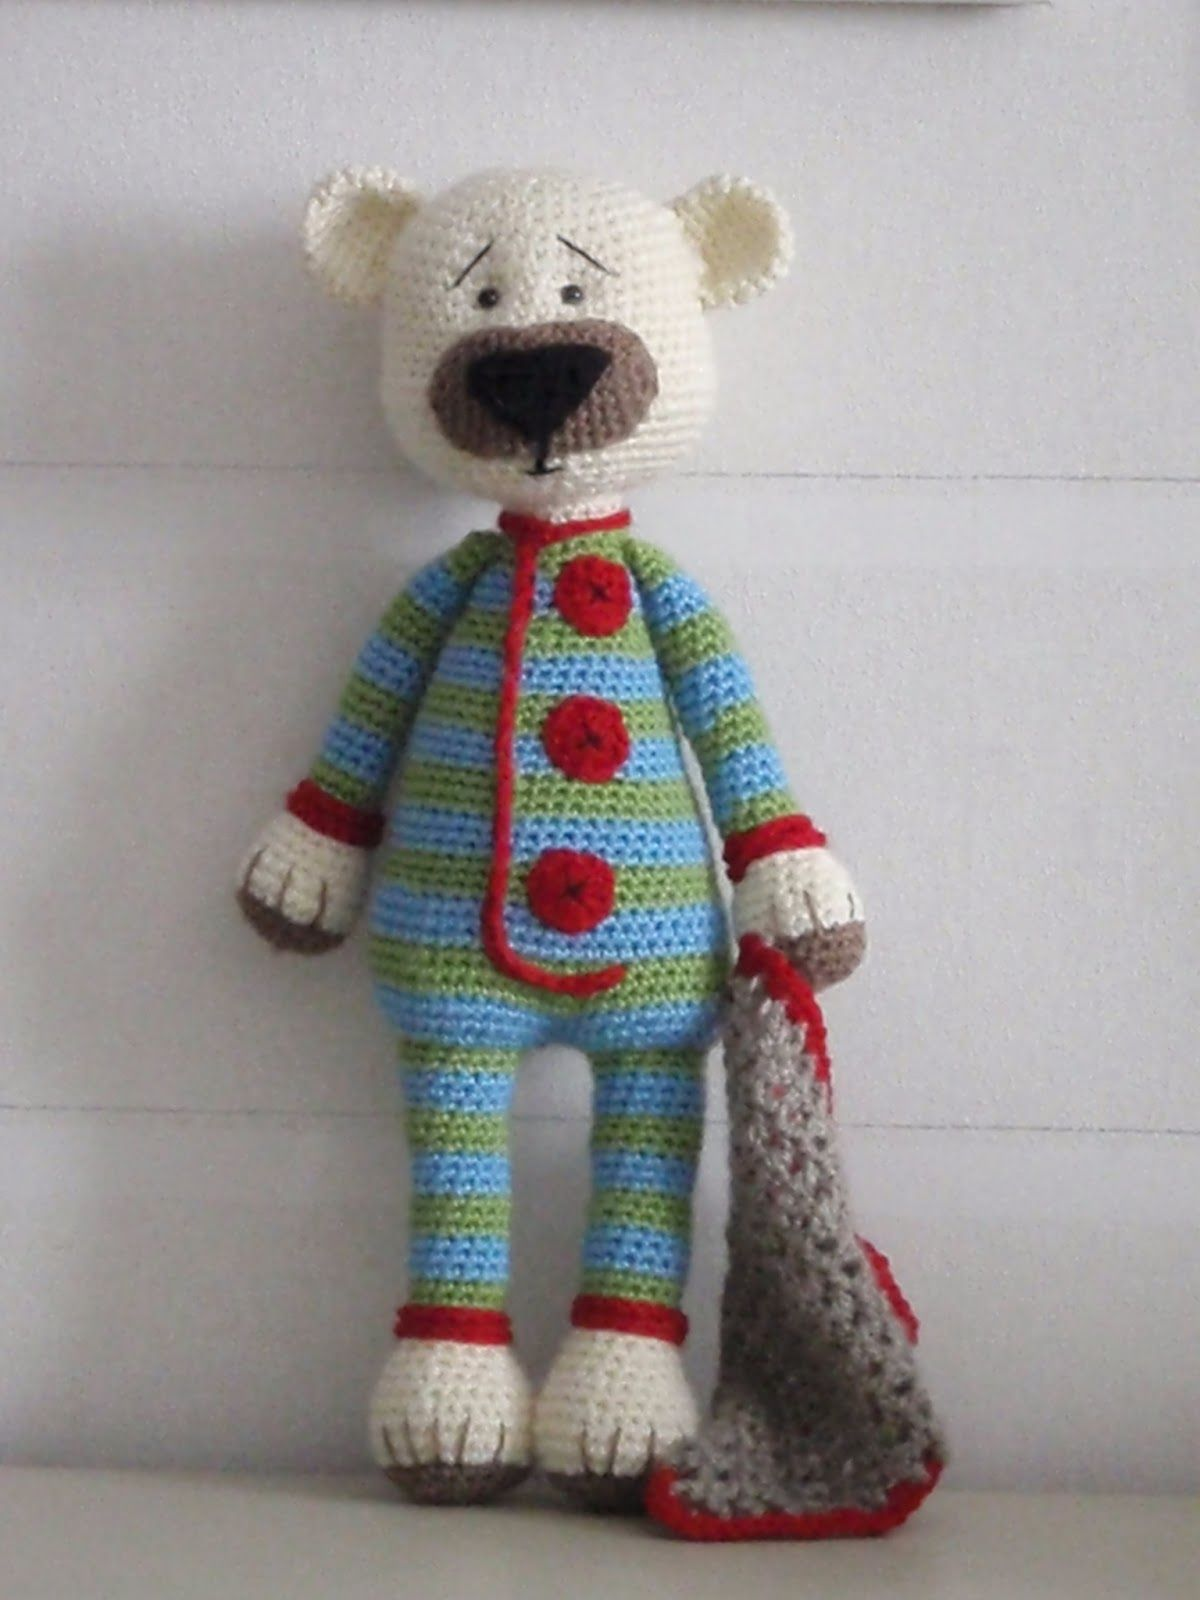 Nils the bear monitejidos pinterest bears amigurumi could do this with any doll or teddy bear pattern just change colors on the body legs and arms and add the details bankloansurffo Choice Image